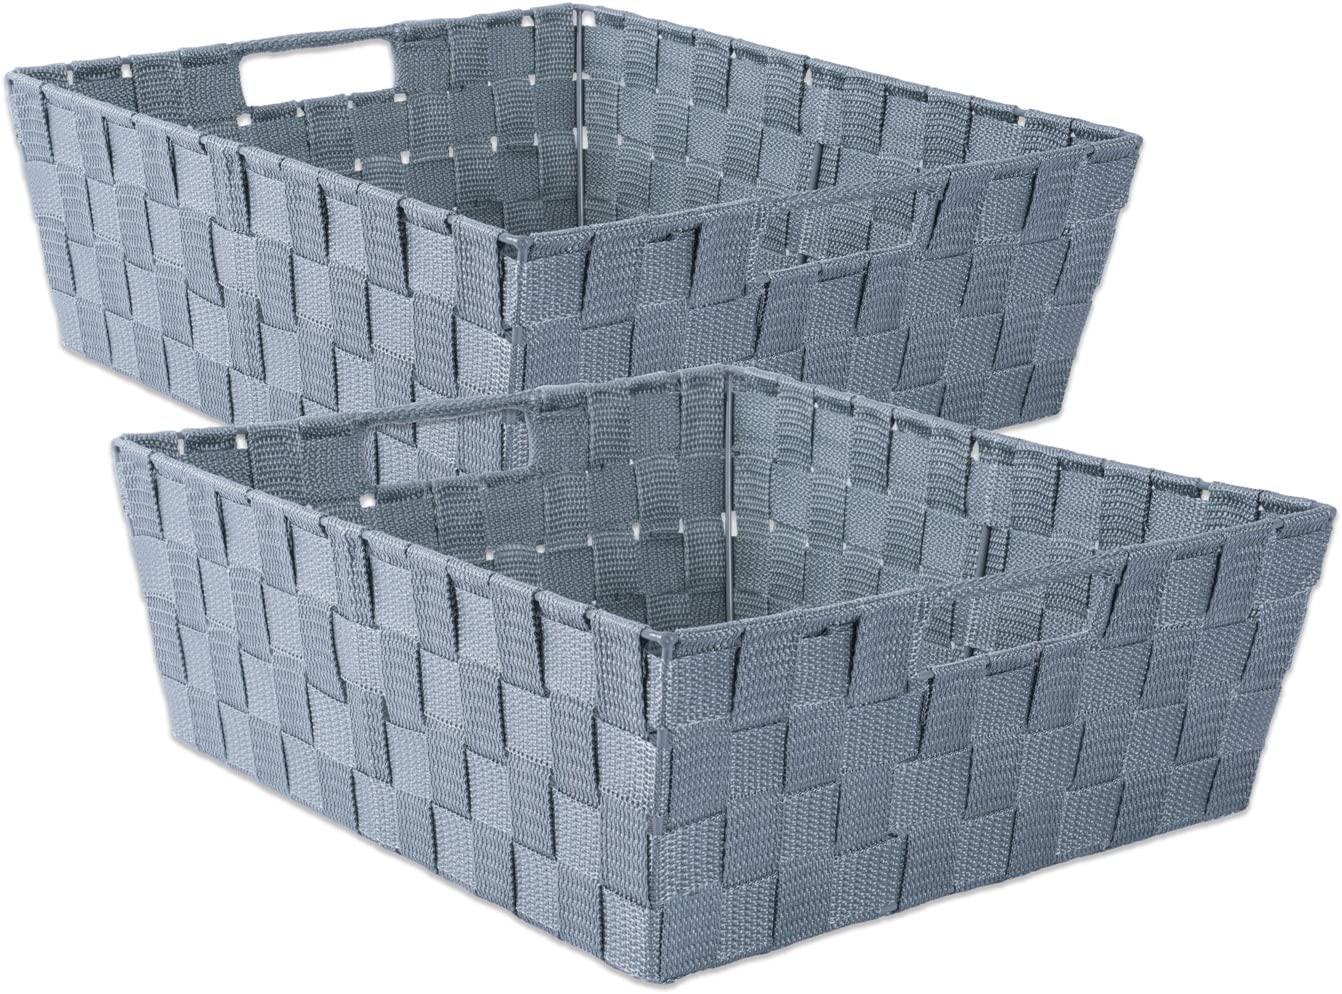 "DII Durable Trapezoid Woven Nylon Storage Bin or Basket for Organizing Your Home, Office, or Closets (Tray - 13x15x5"") Gray - Set of 2"